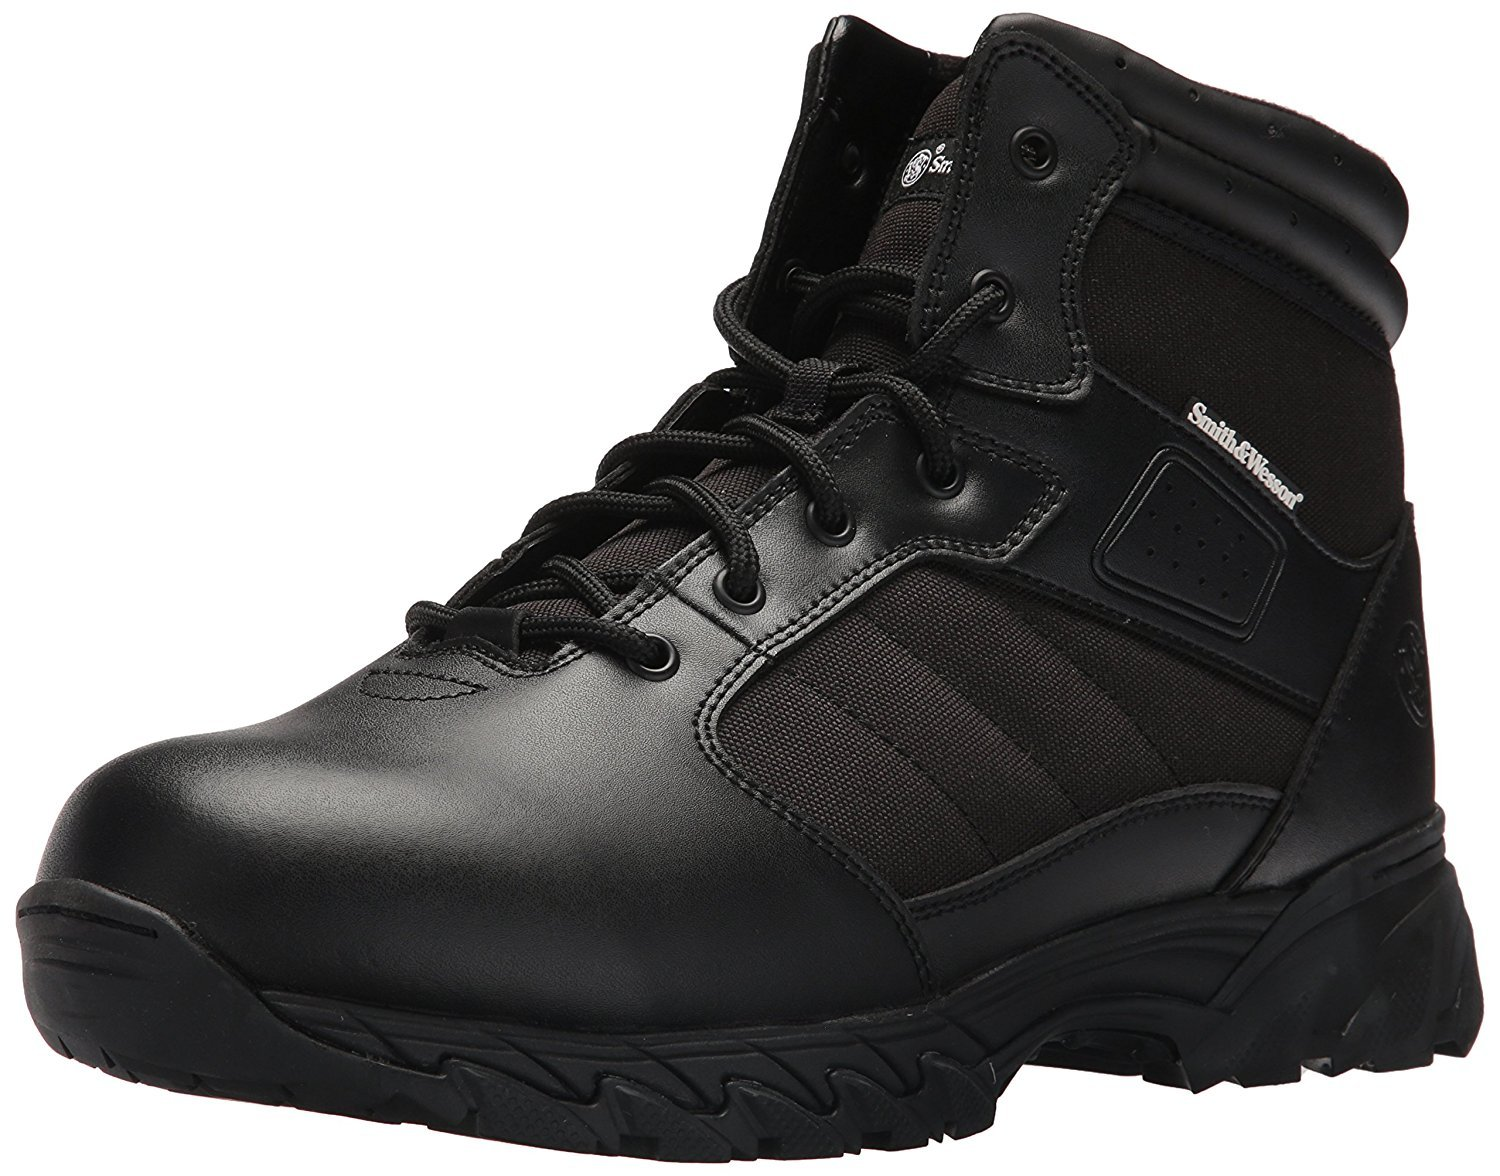 Smith & Wesson Men's Breach 2.0 Tactical Size Zip Boots, Black, 11